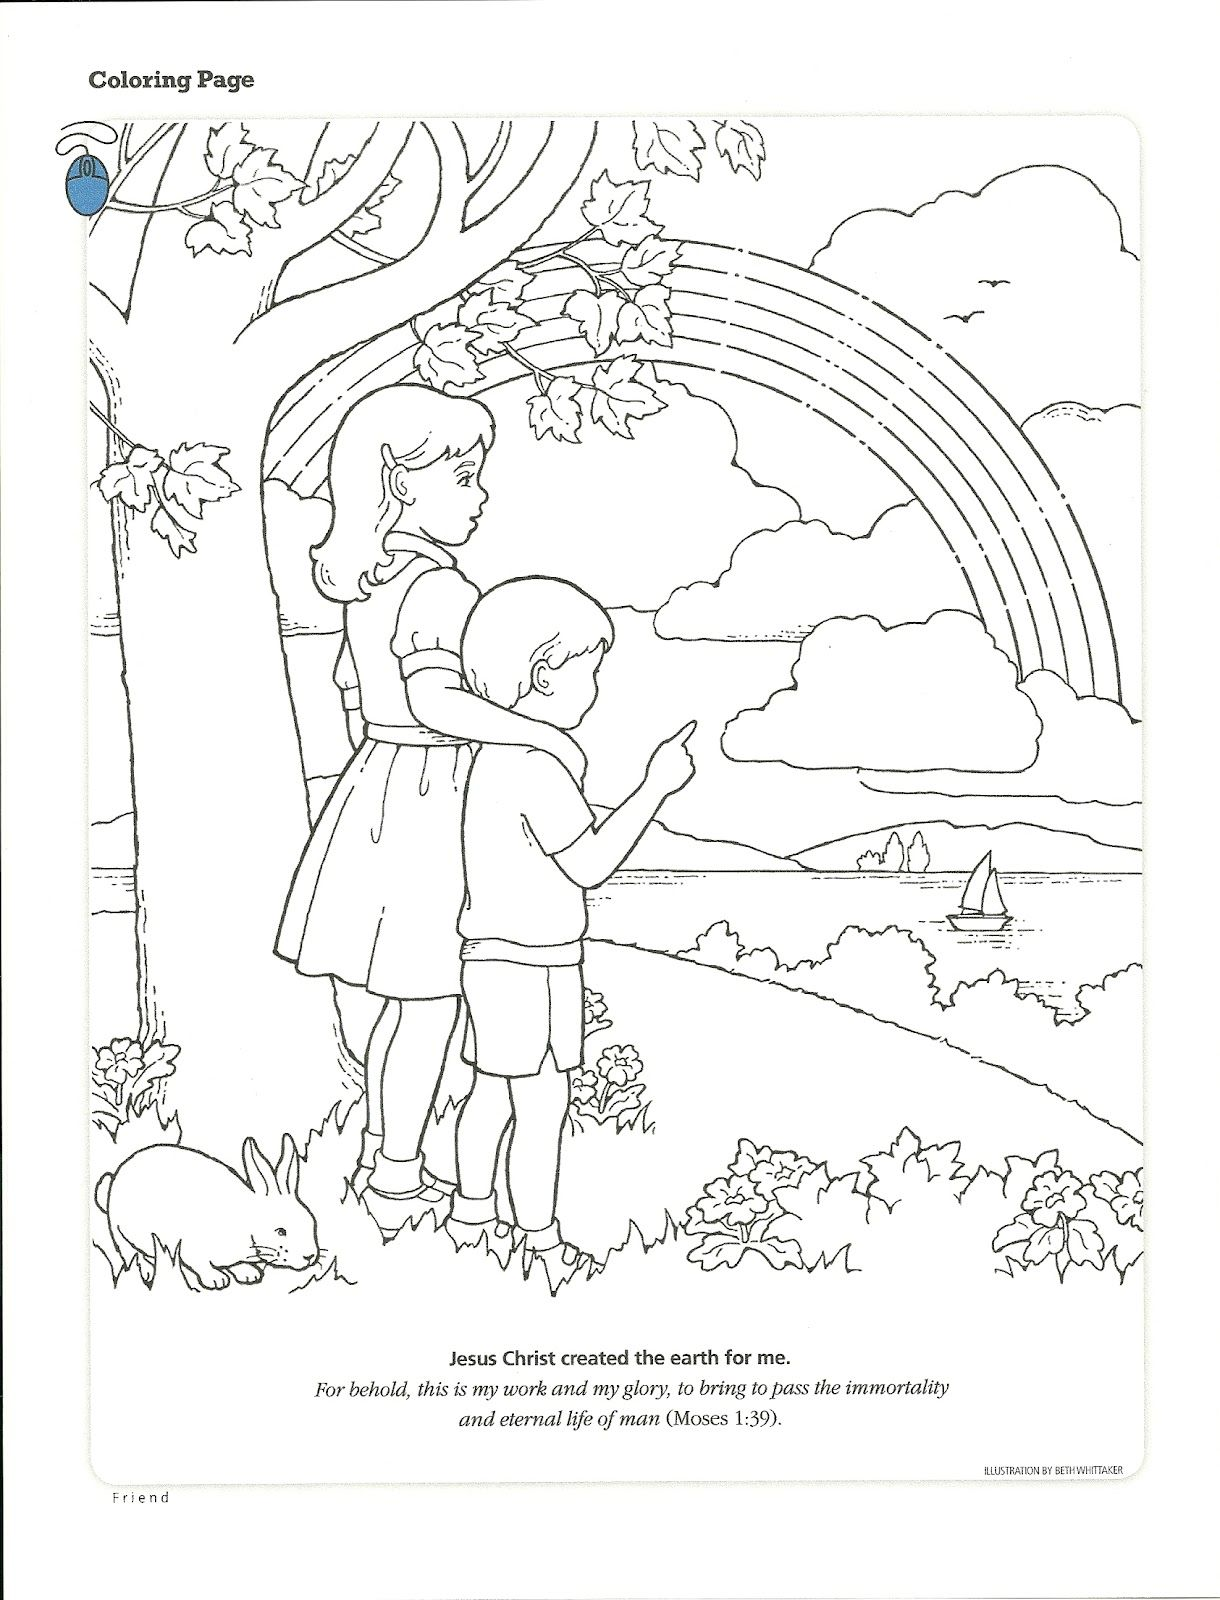 Coloring Pages For Following Jesus. LDS Primary Coloring Pages  Can Follow Jesus Example activity from the July 2010 Friend